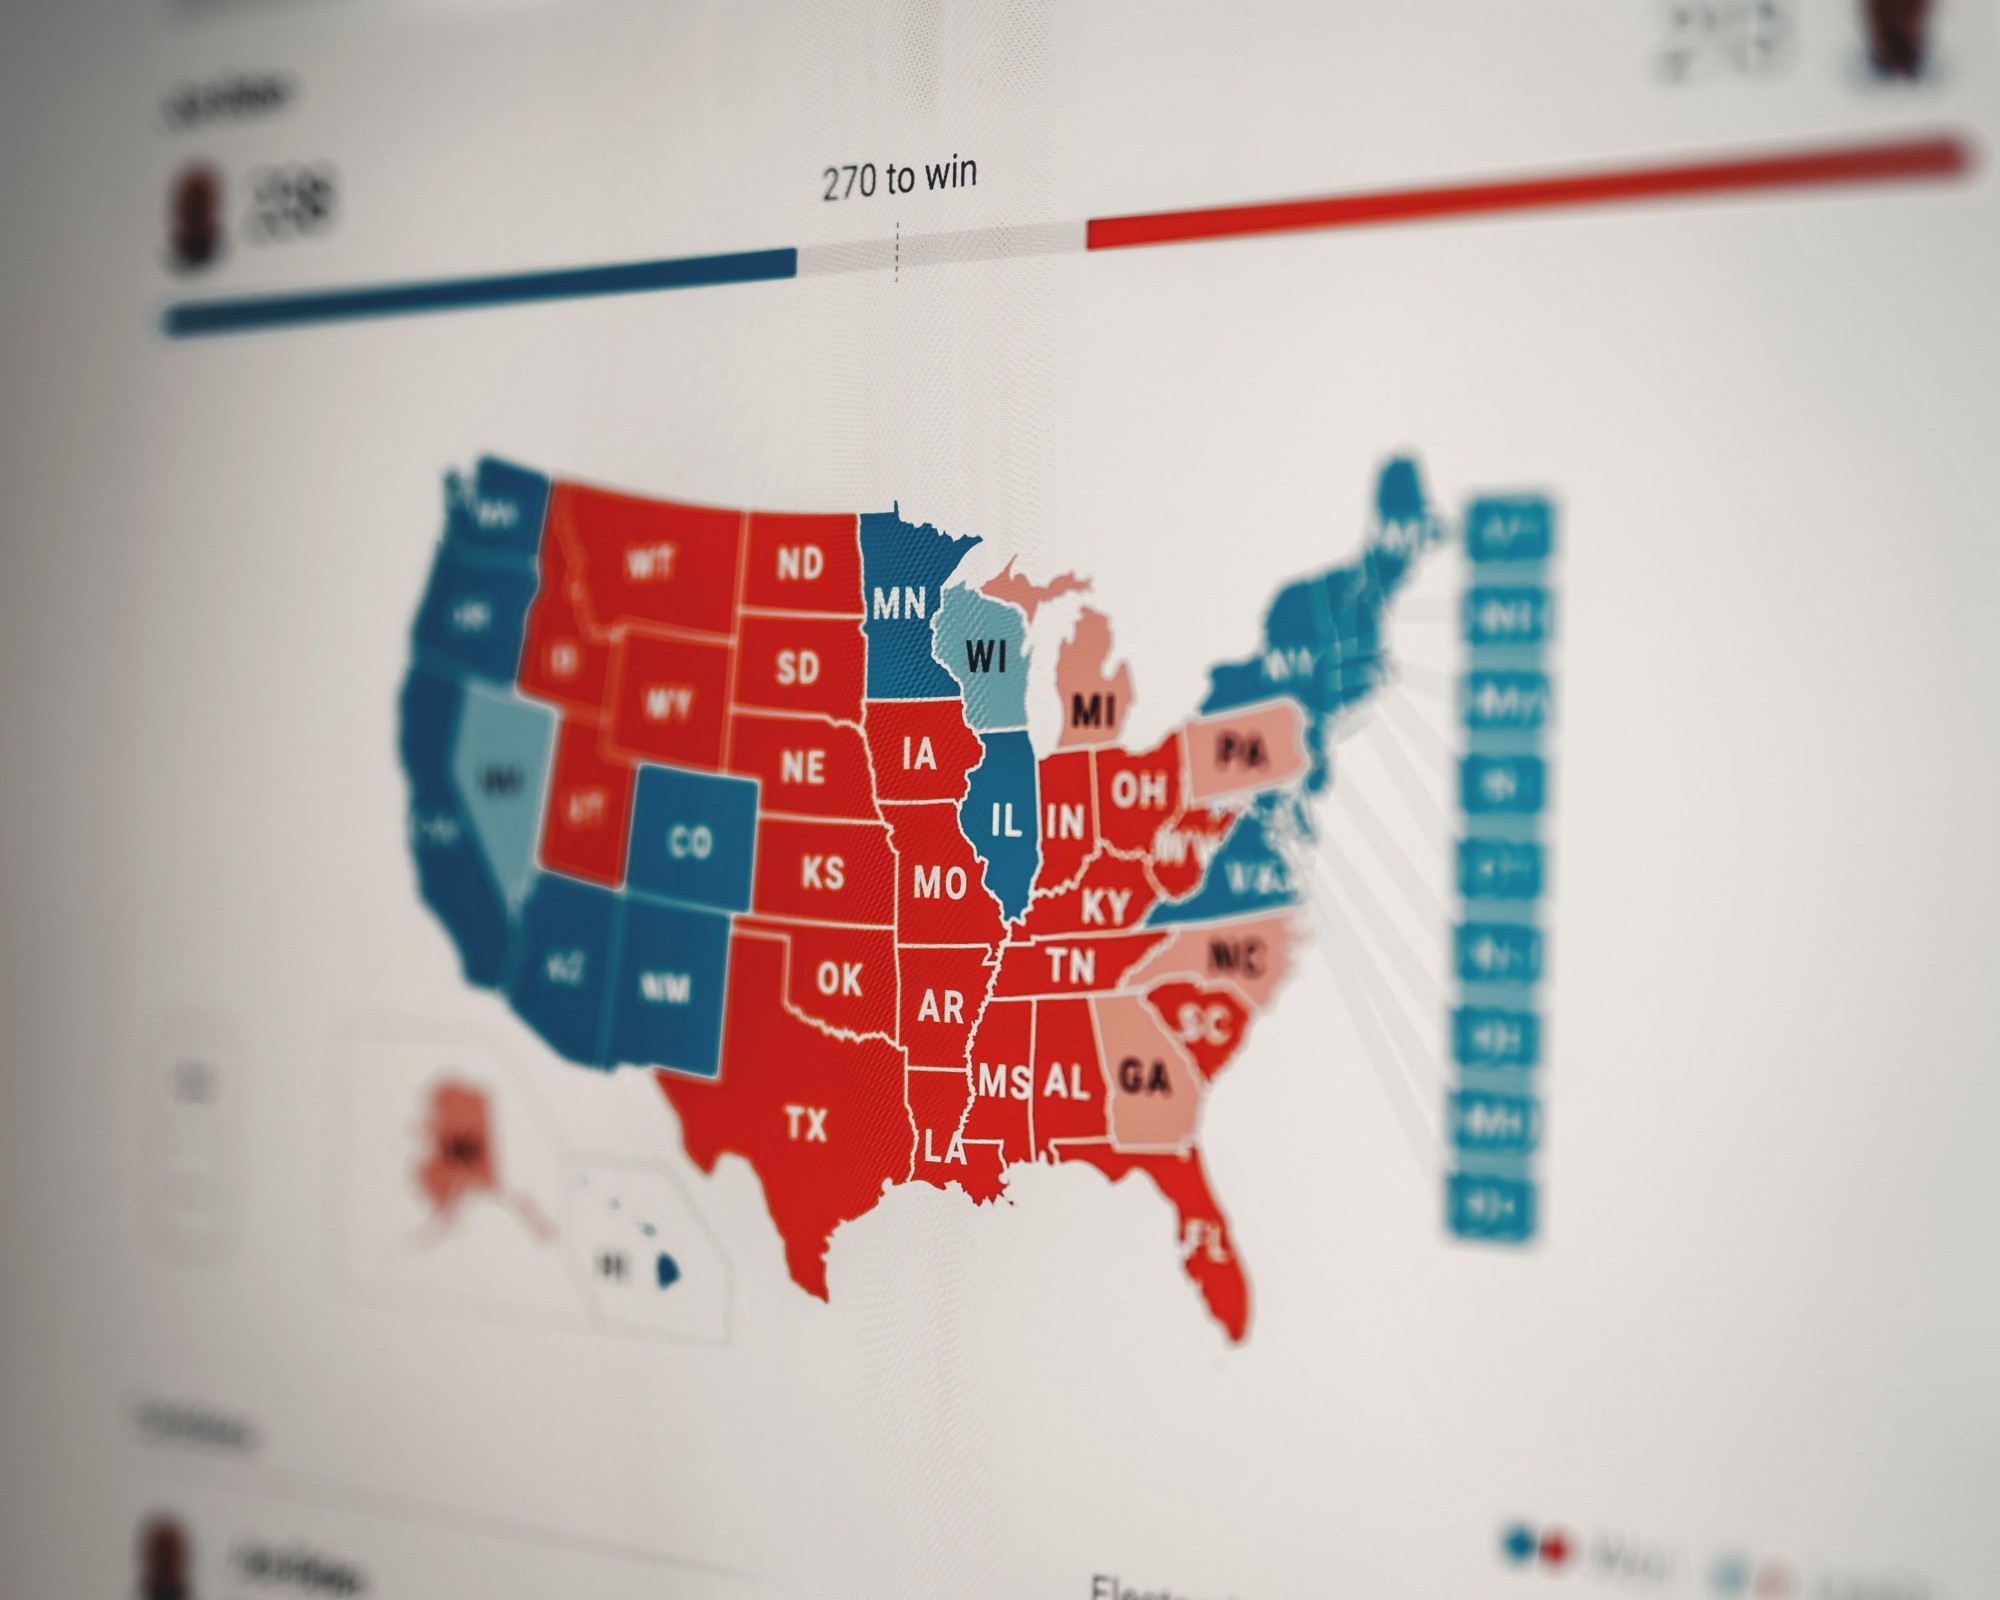 Map showing red states and blue states for the electoral college in the 2020 elections